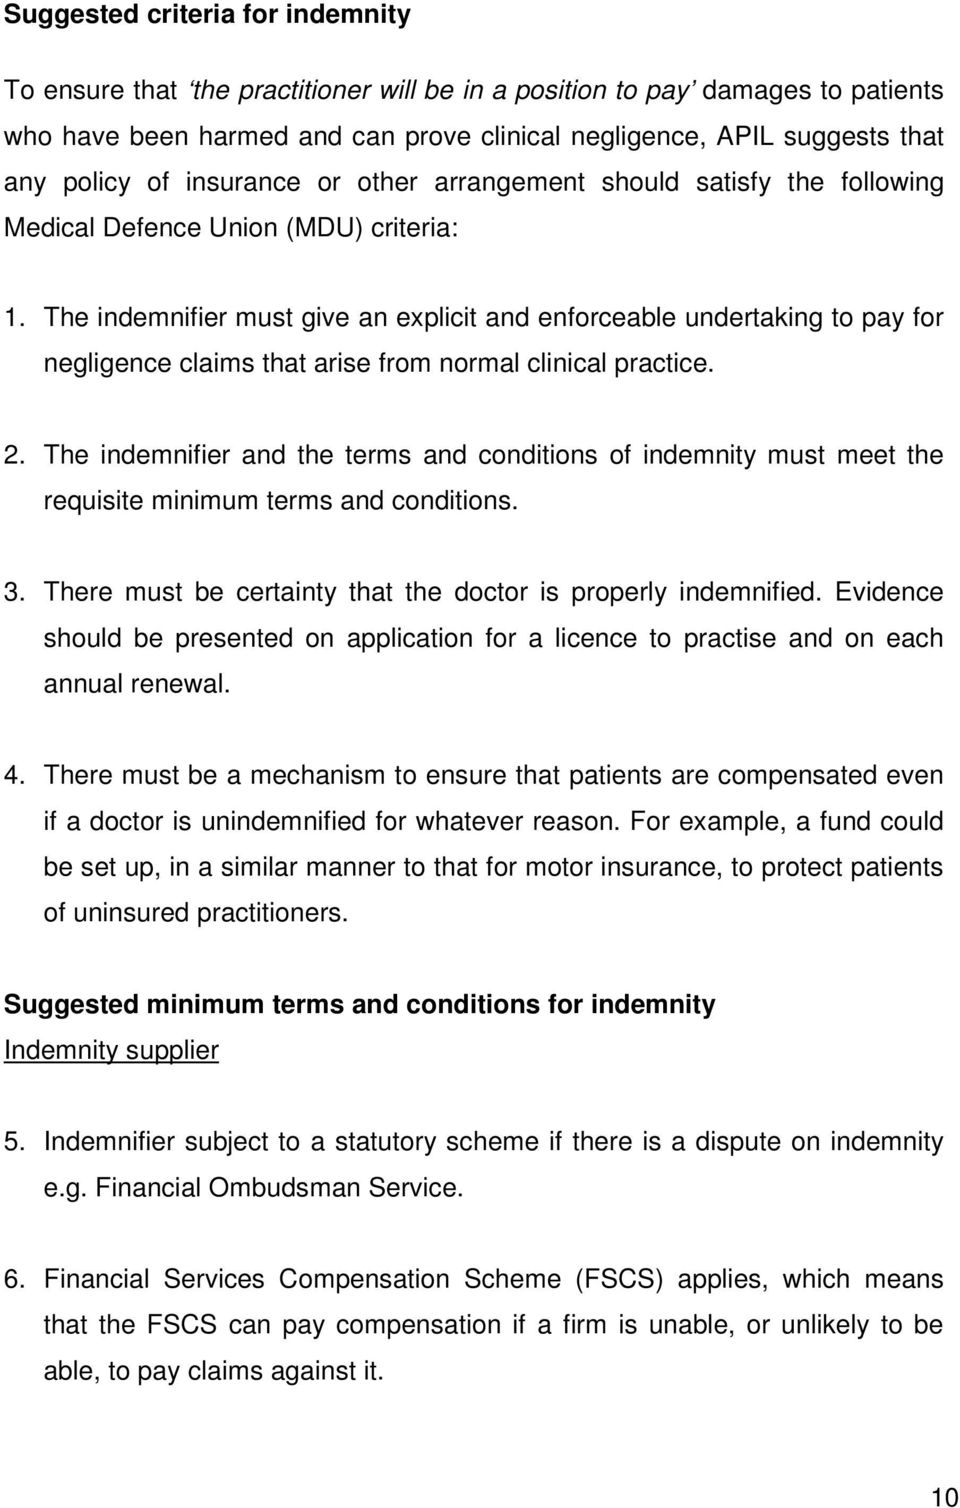 The indemnifier must give an explicit and enforceable undertaking to pay for negligence claims that arise from normal clinical practice. 2.